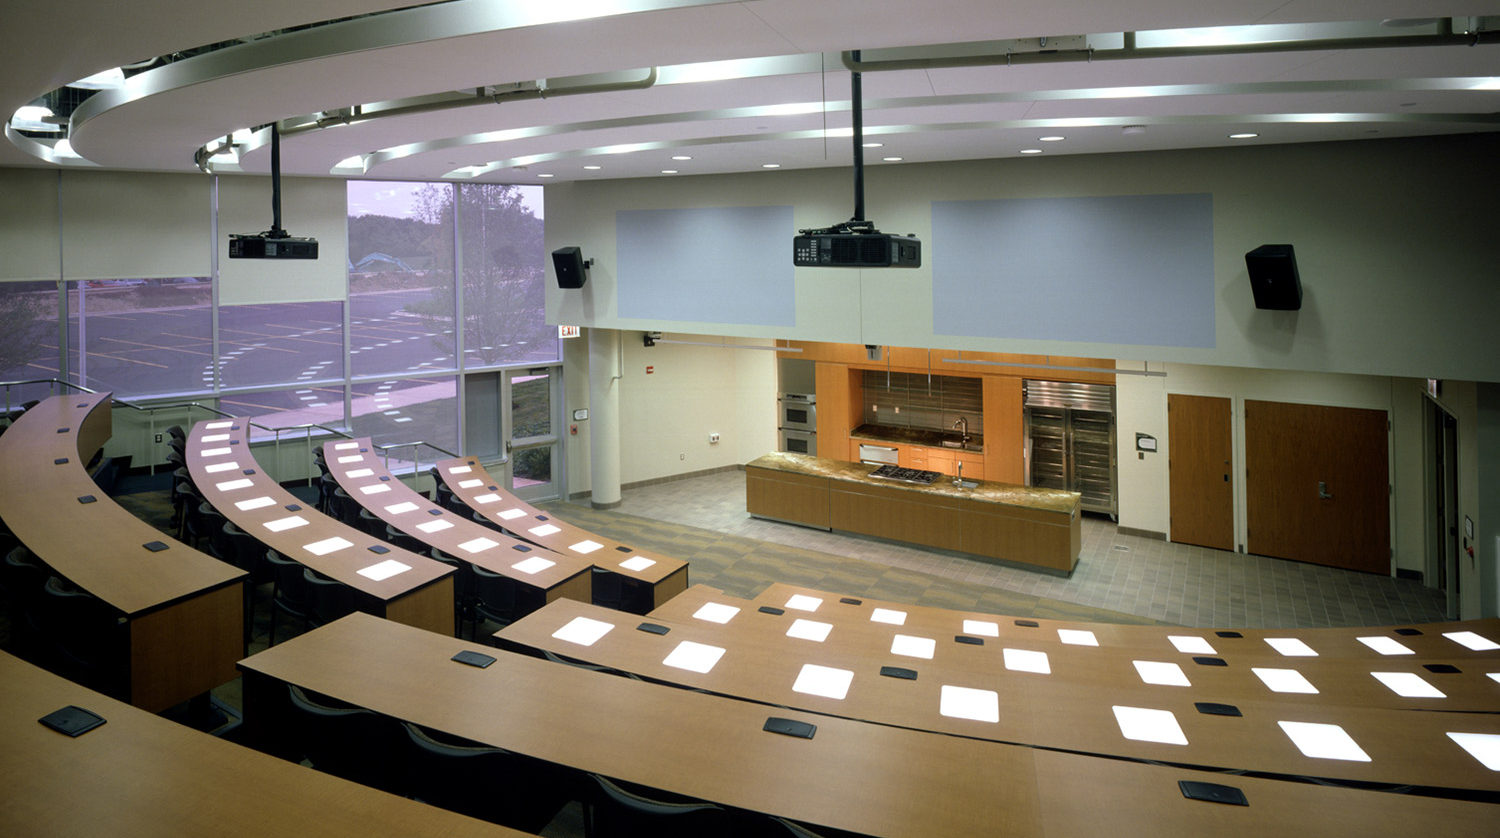 College of DuPage_ Culinary and Hospitality Center lecture hall